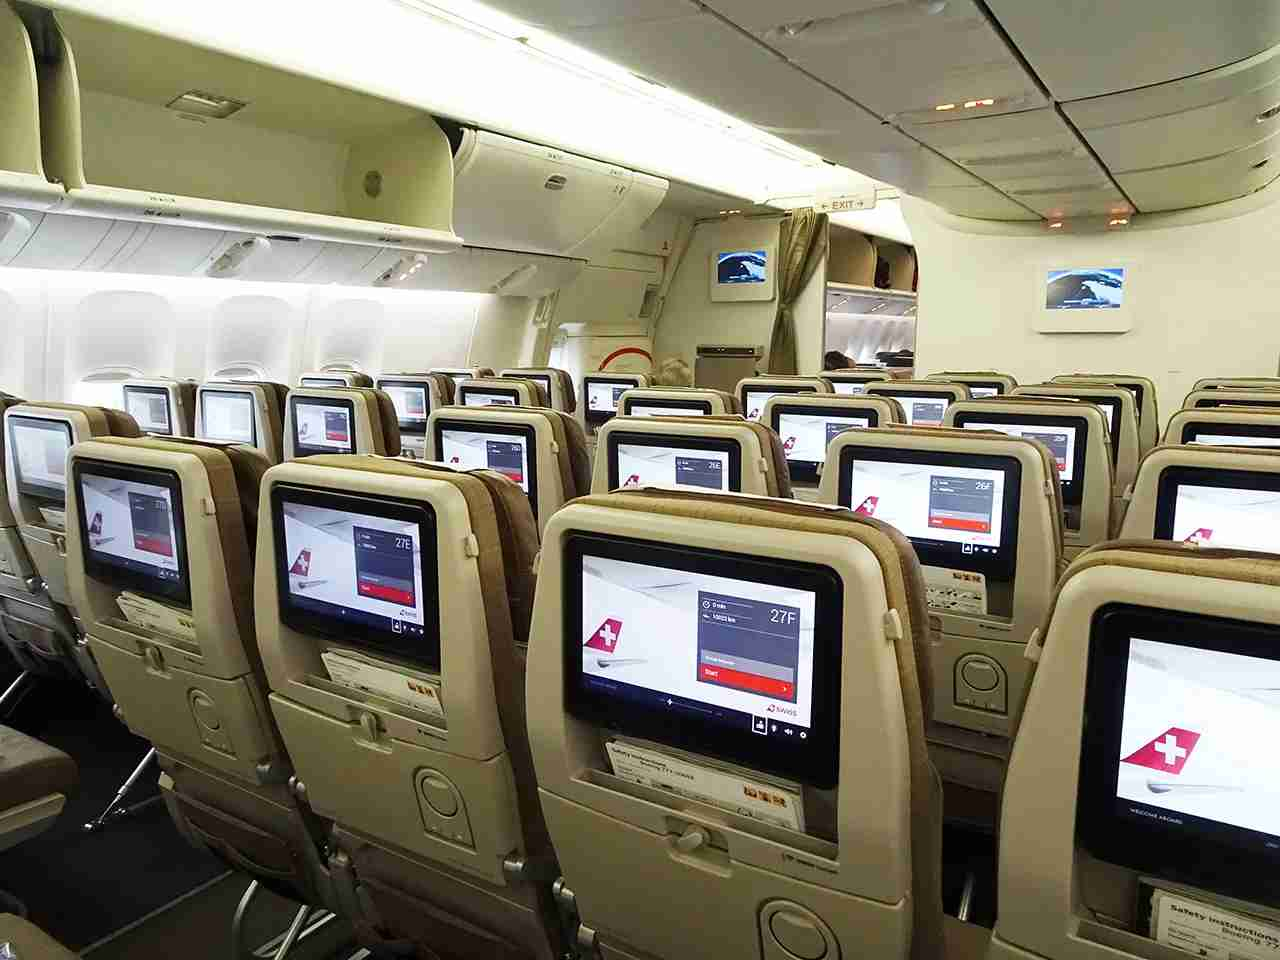 The economy cabin of a Swiss 777 (Photo by J Keith van Straaten / The Points Guy)